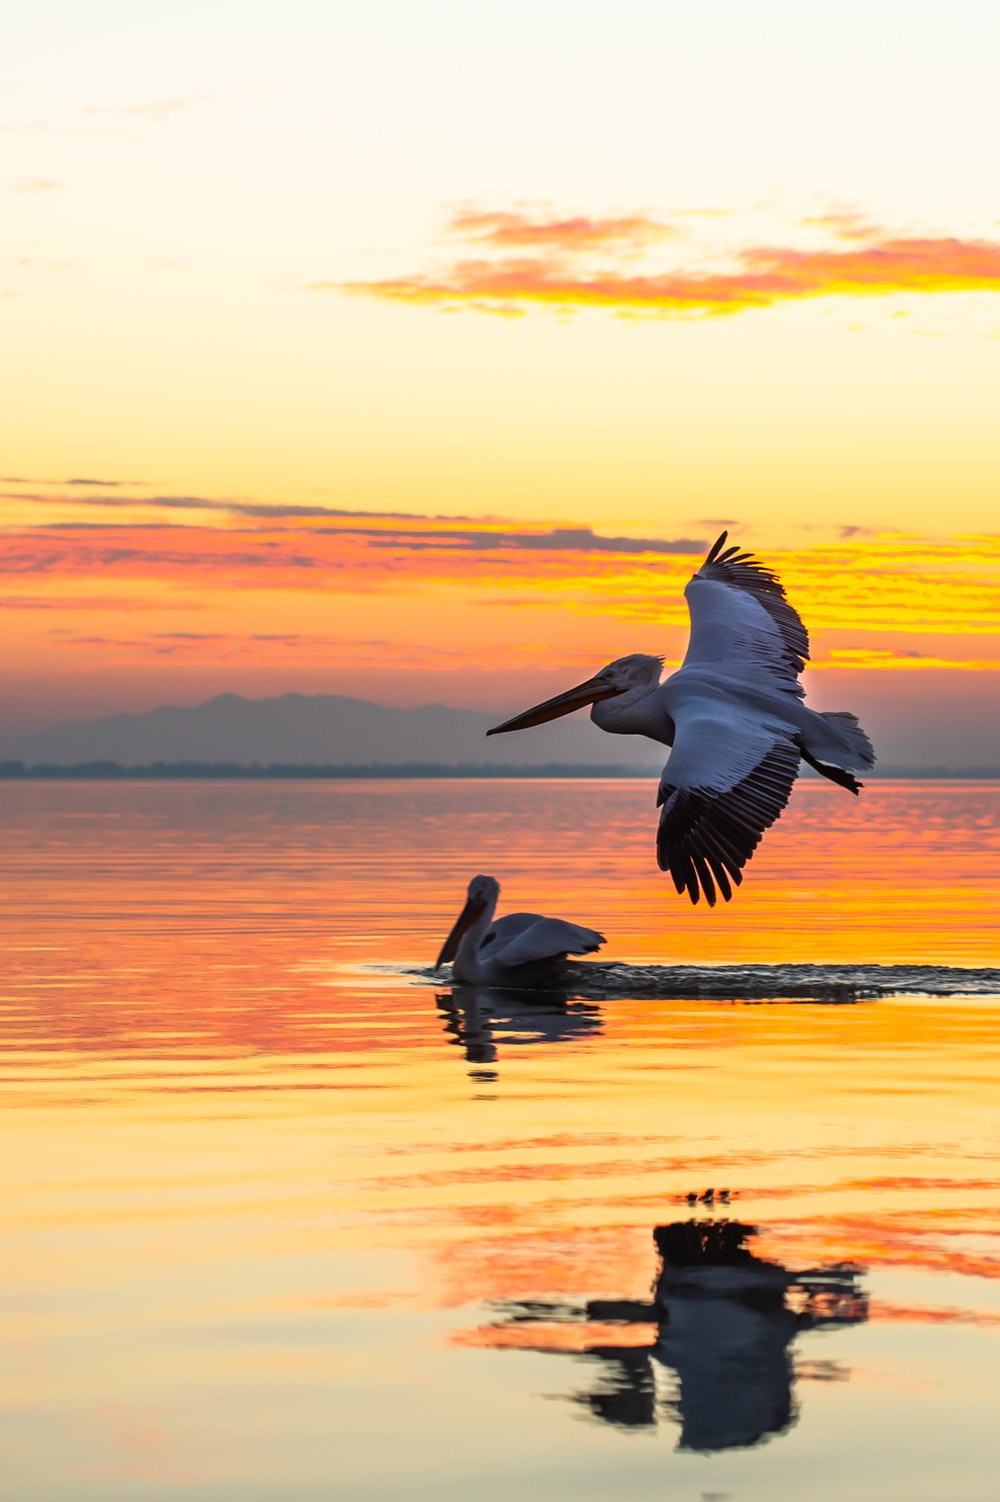 pelican flying over the sea during sunset